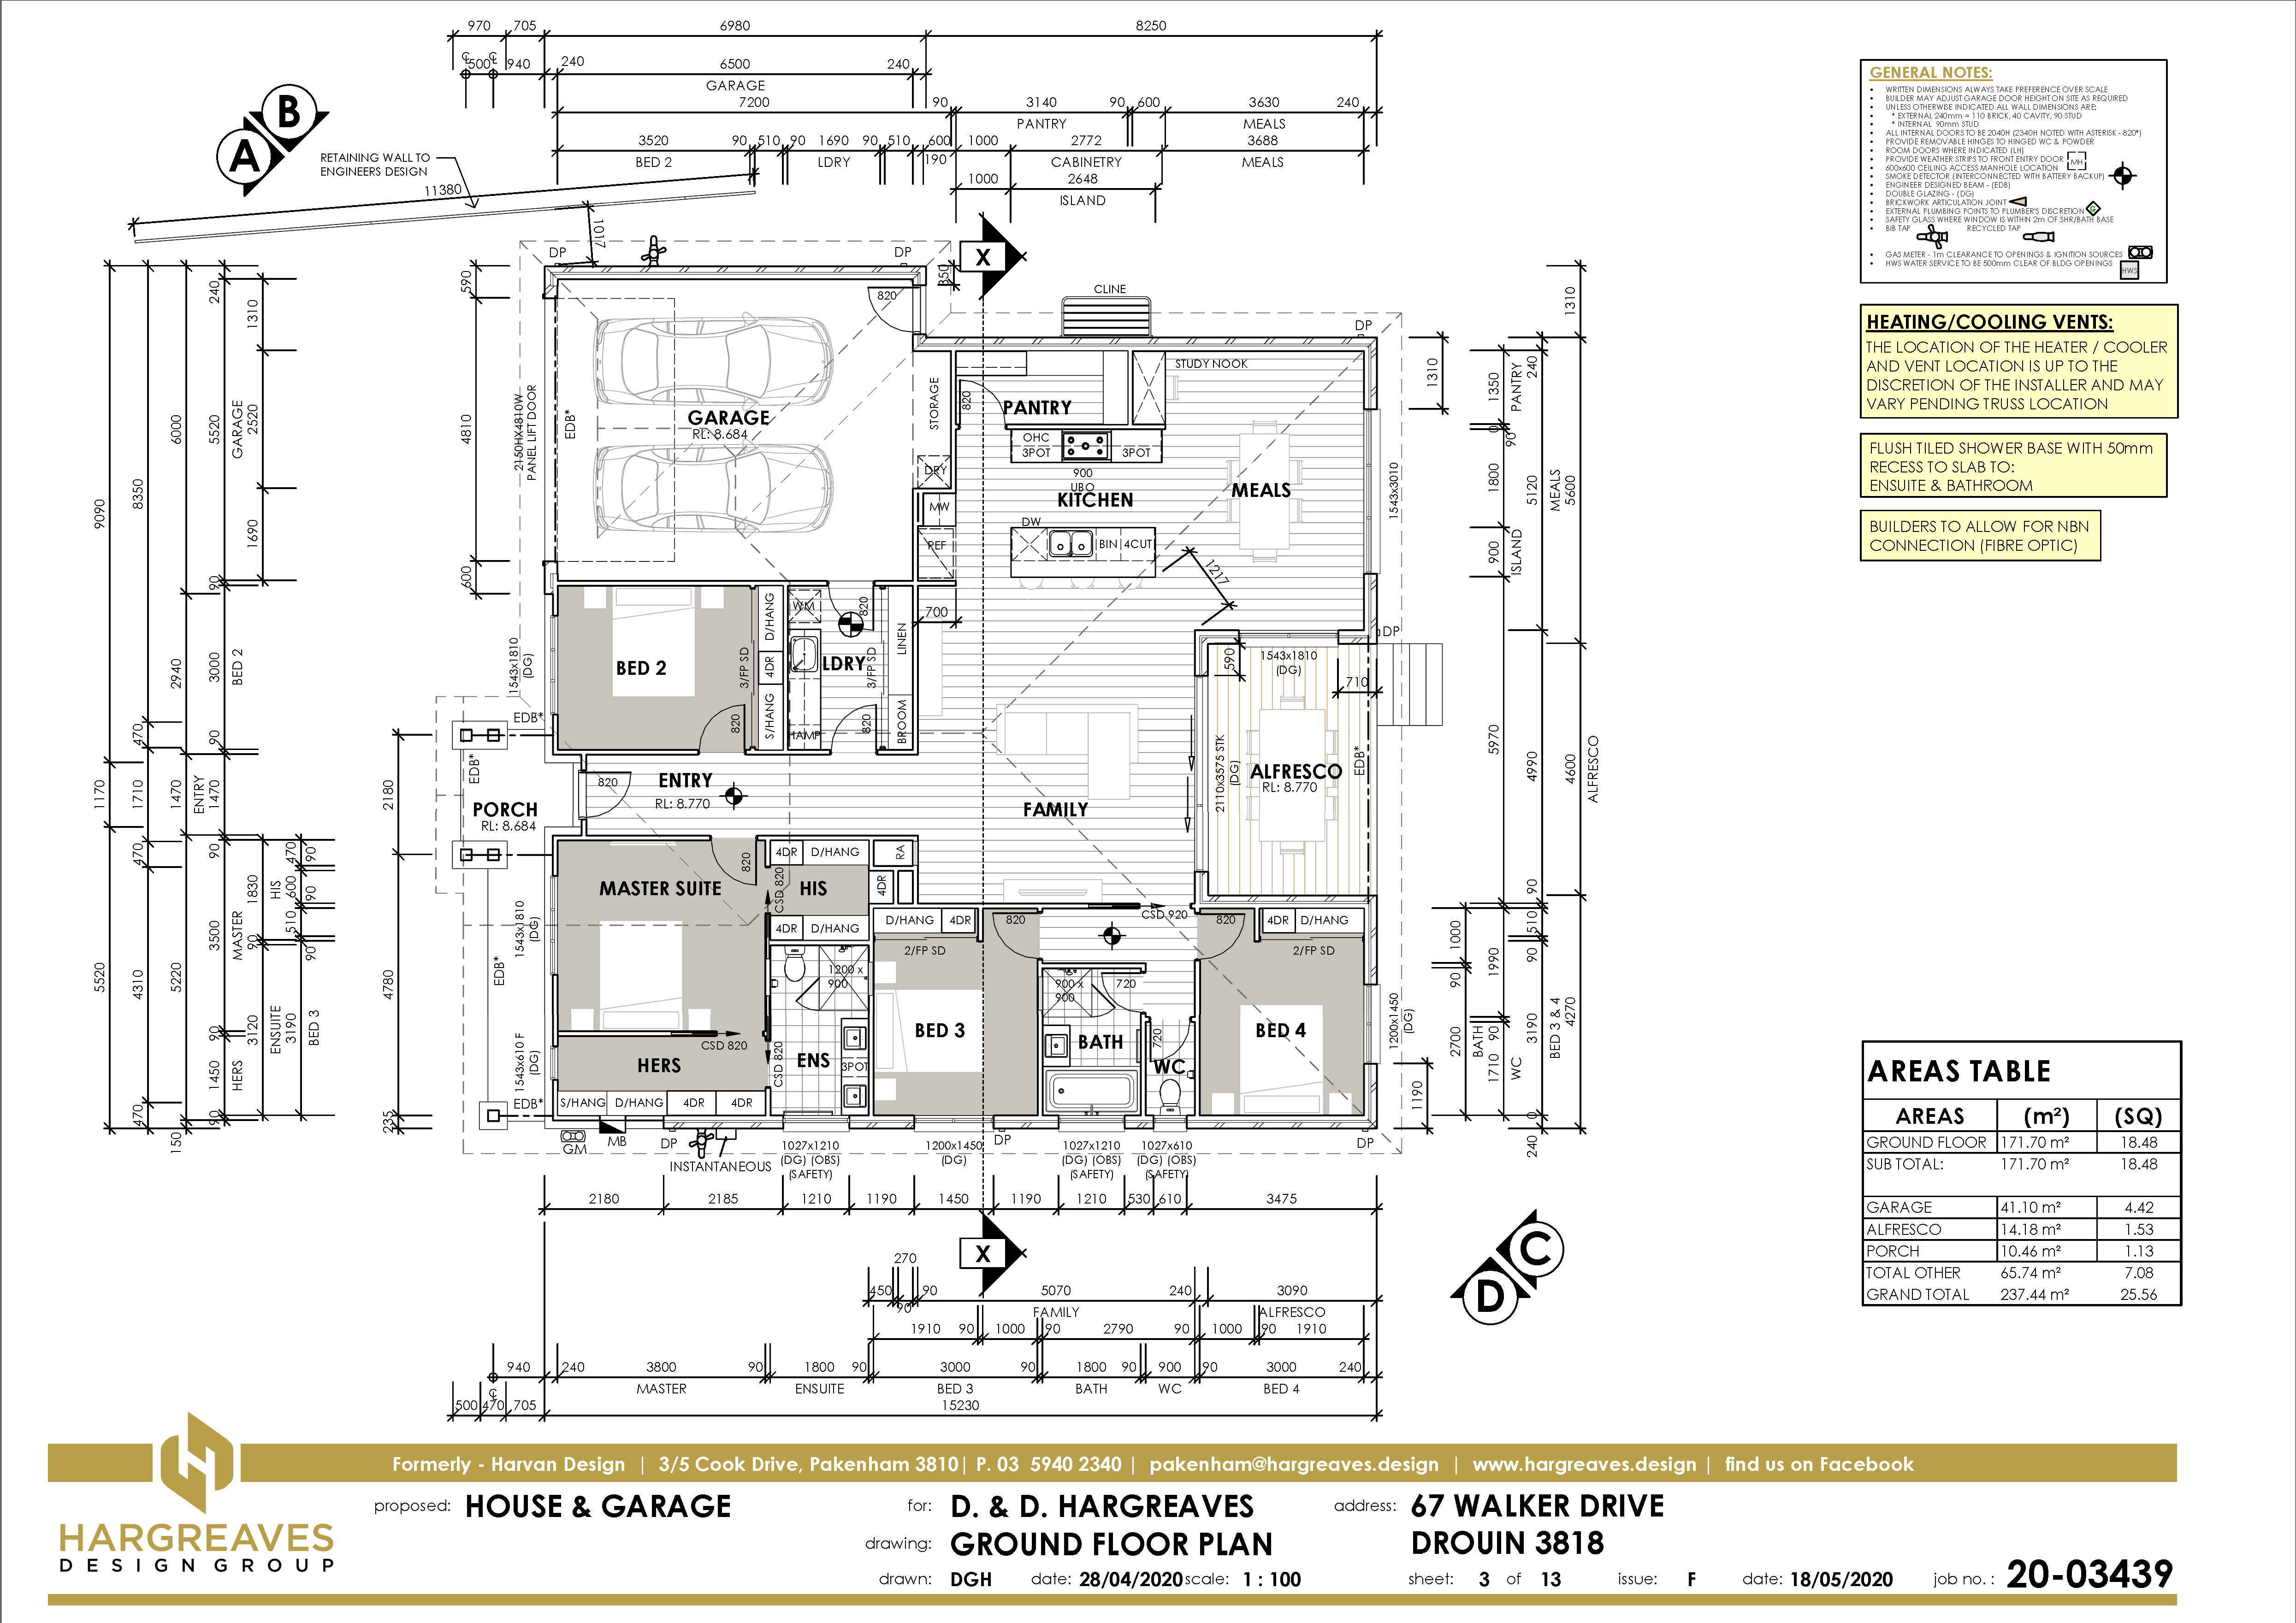 The Floor Plan Sheet